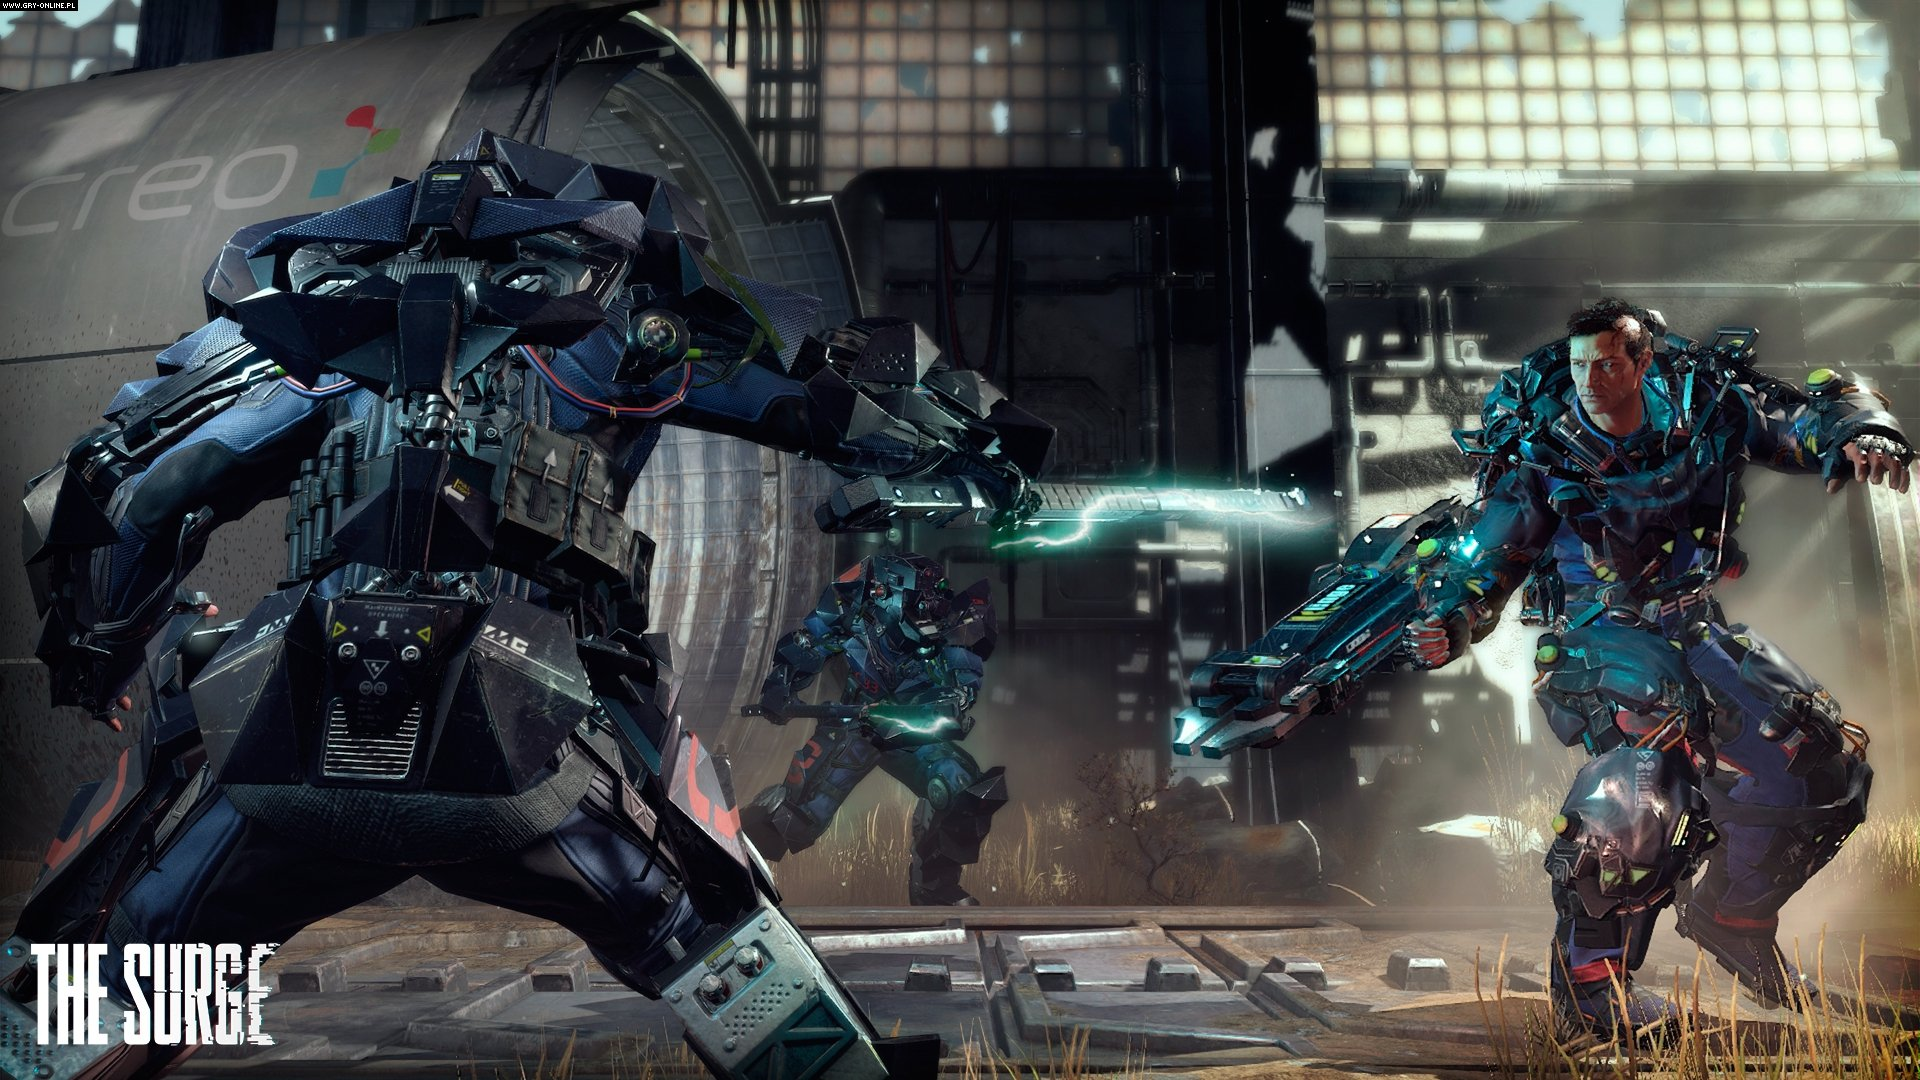 The Surge PC, PS4, XONE Games Image 7/12, Deck13 Interactive, Focus Home Interactive